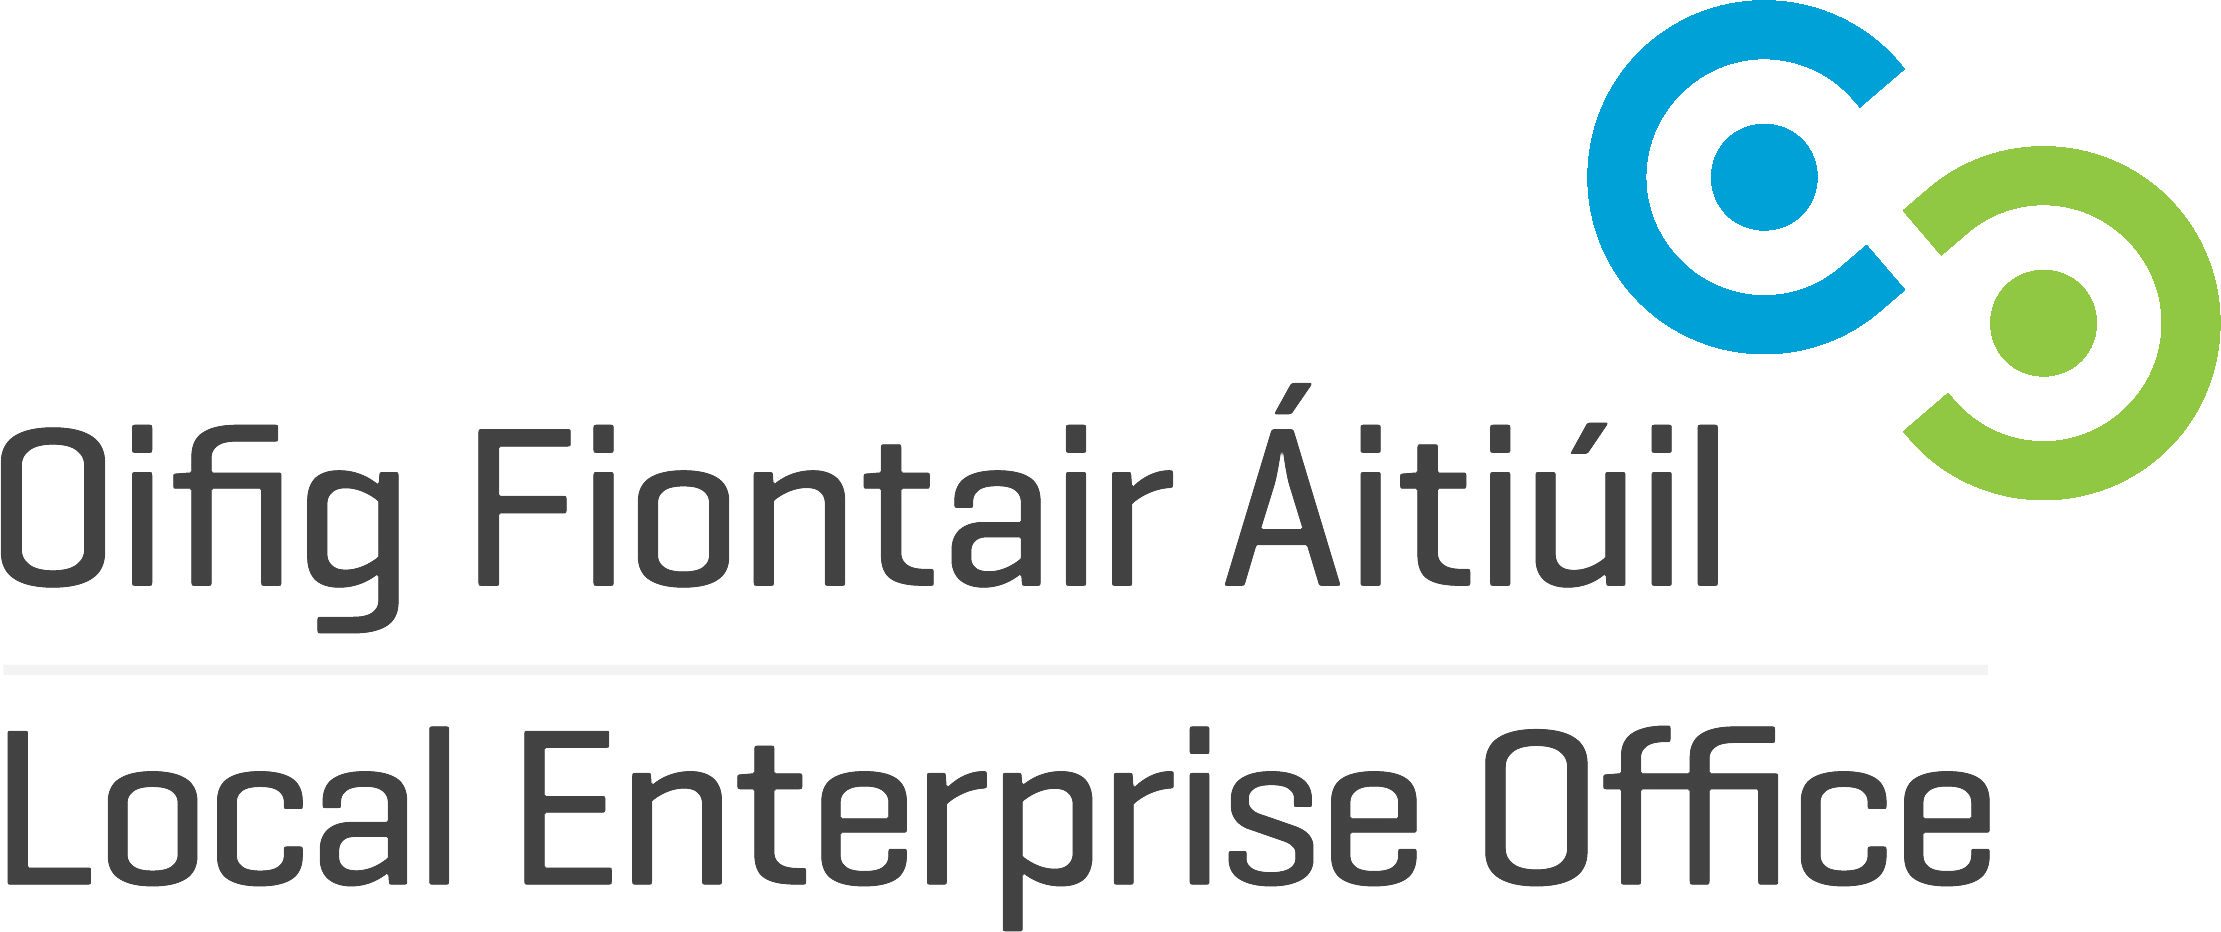 local-enterprise-office-logo.png